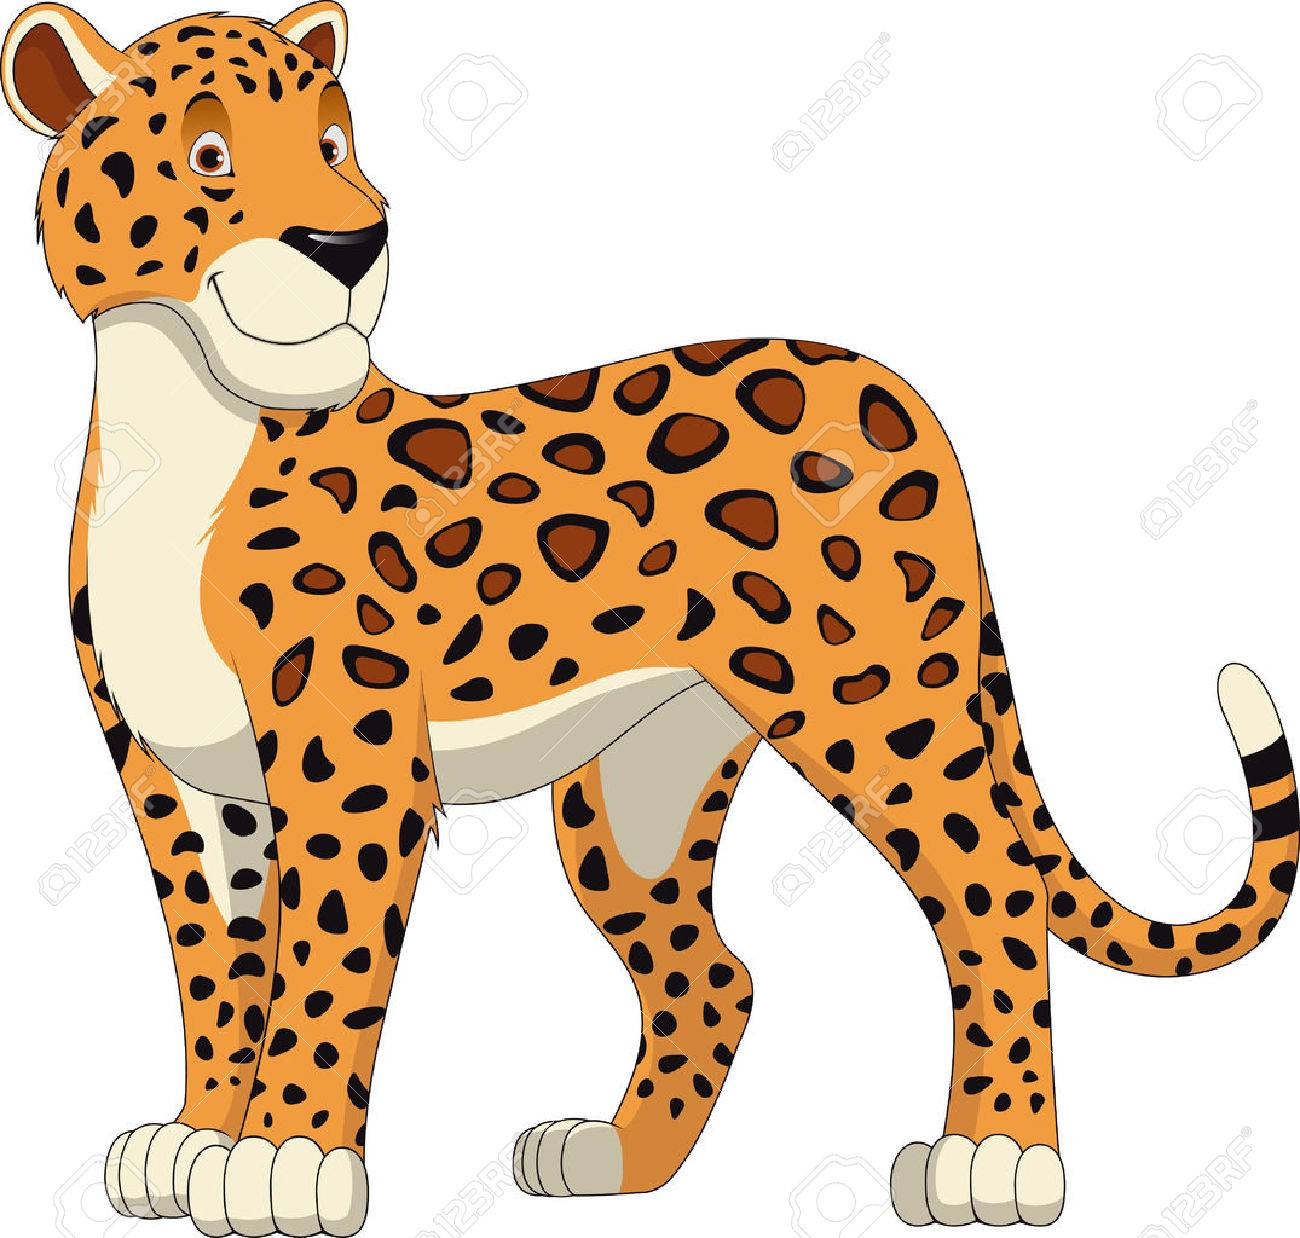 4 895 jaguar stock illustrations cliparts and royalty free jaguar rh 123rf com leopard clip art image leopard clipart black and white